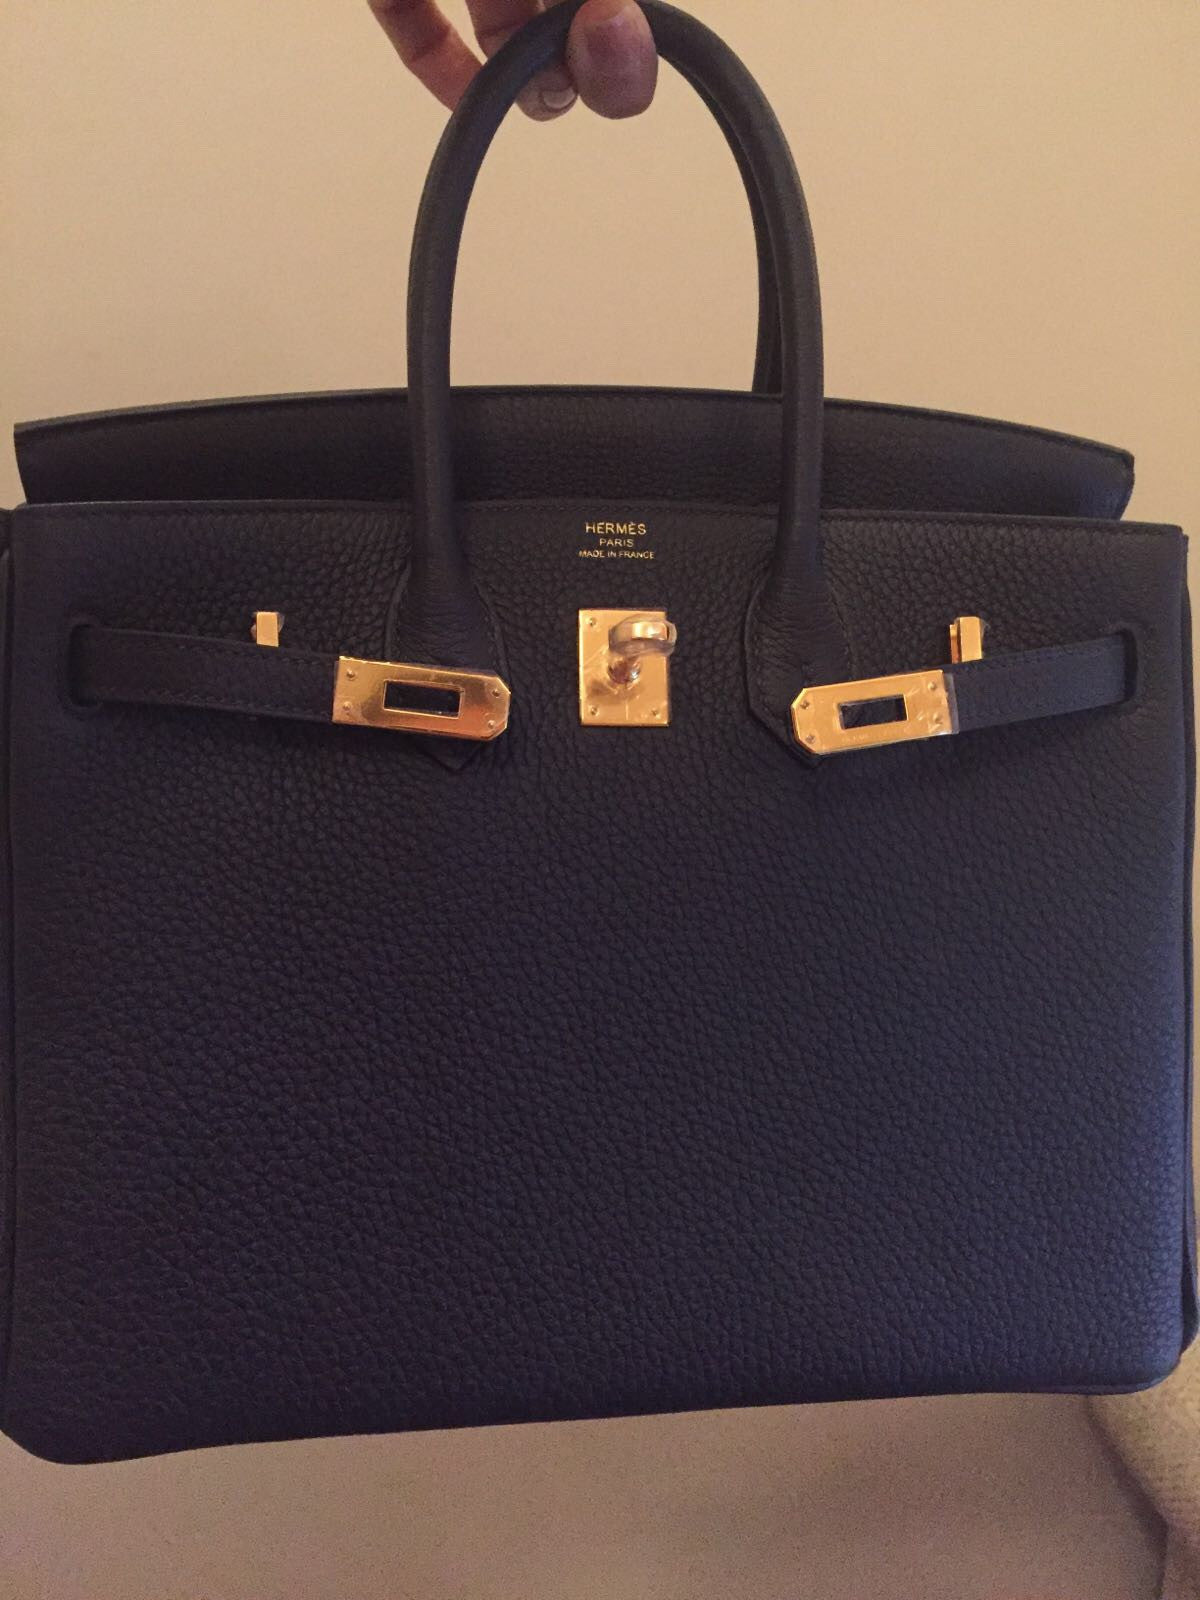 ce5a3436e869 ... official new hermes birkin 25 blue nuit dark blue togo gold hardware  full set 24809 48fc8